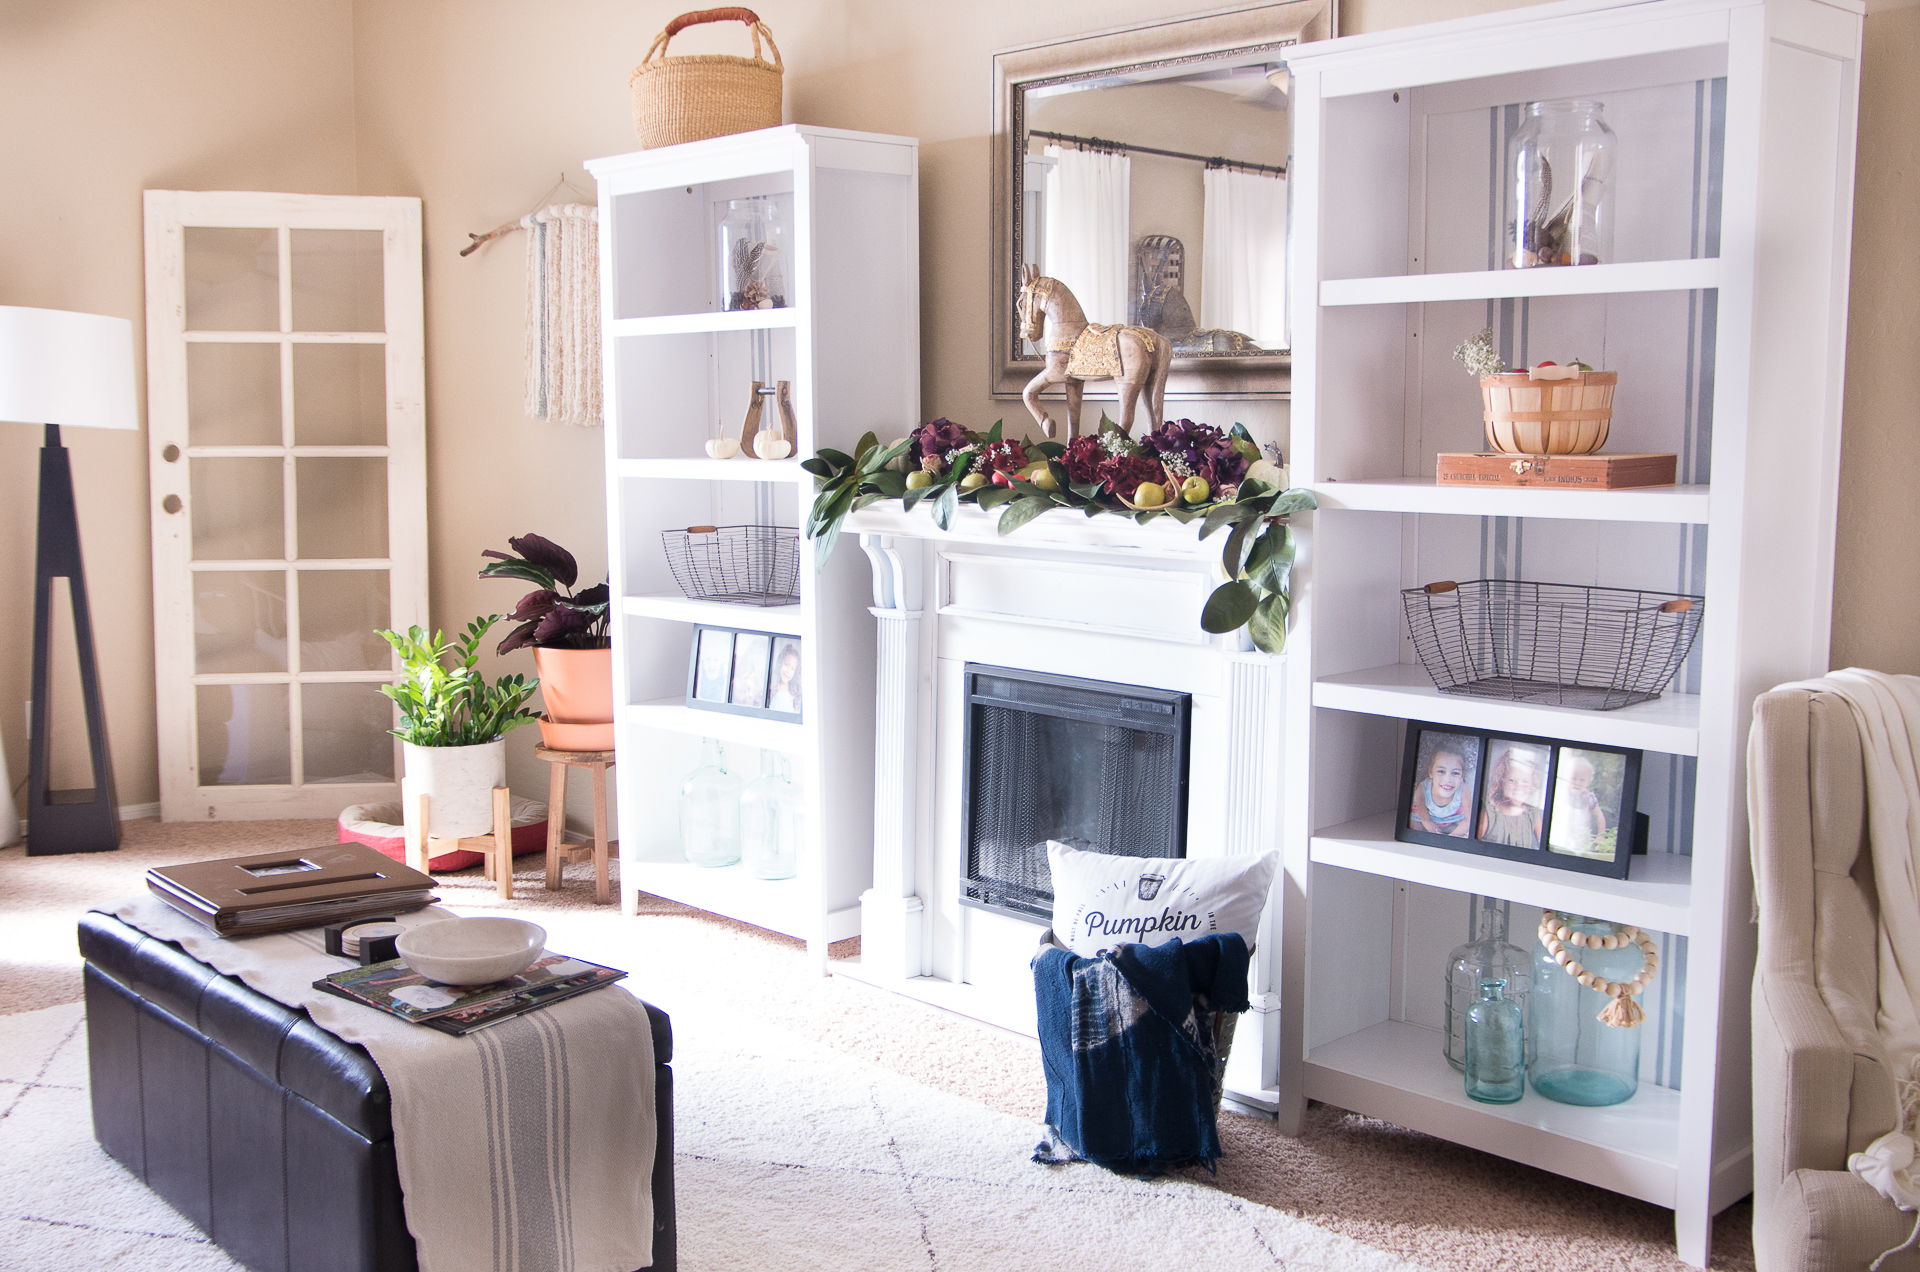 Introducing The Ultimate Guide To Home Organization Life